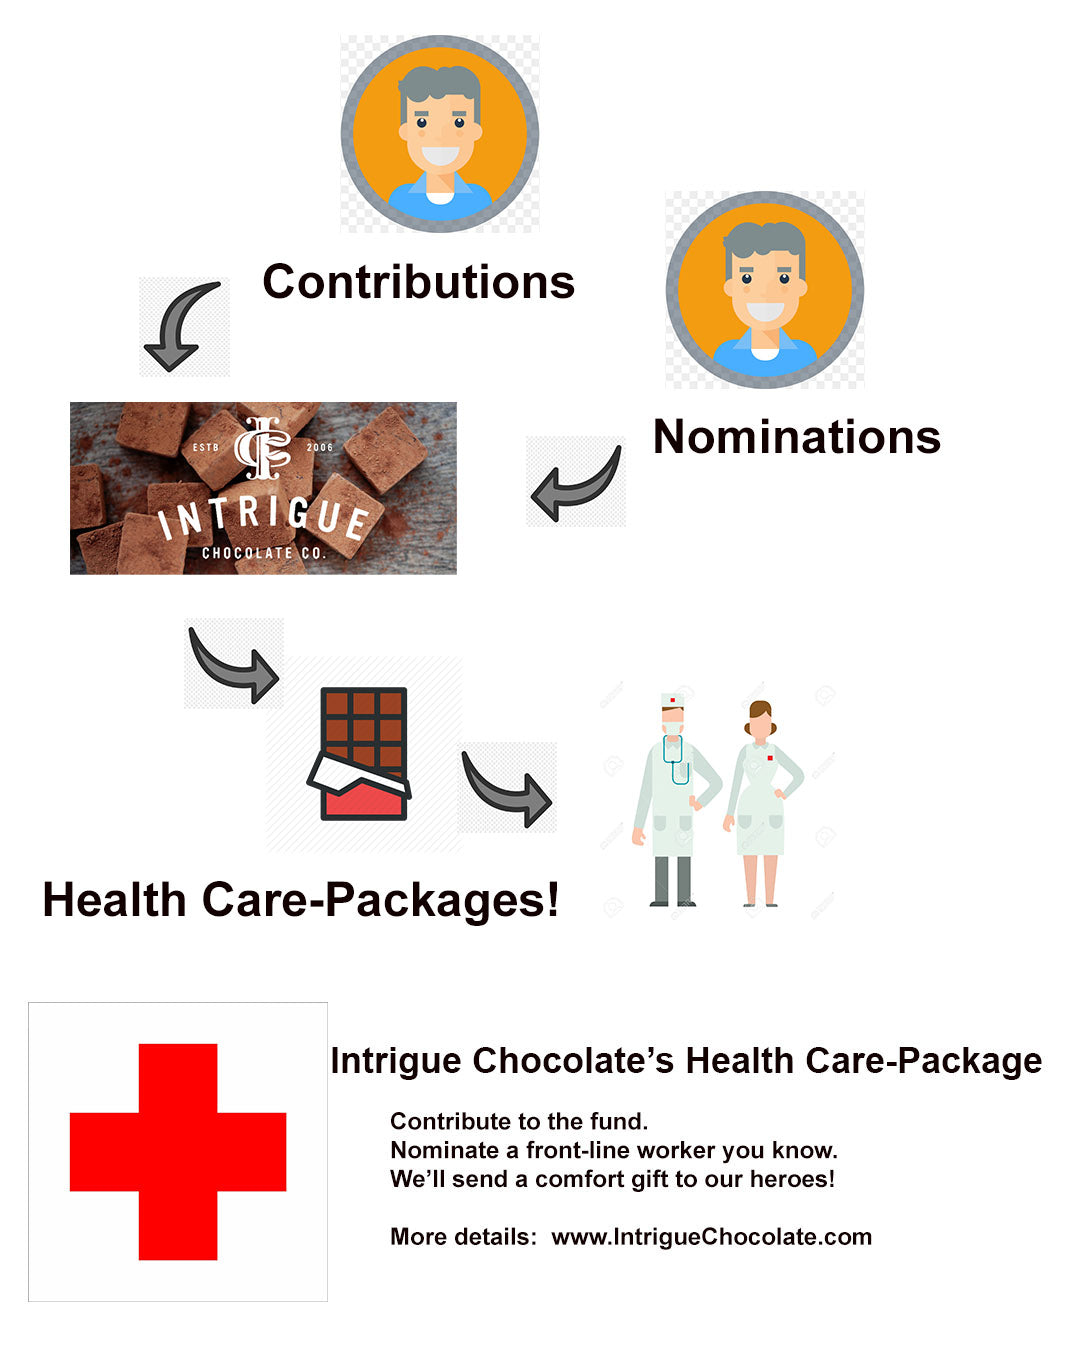 Intrigue Chocolate's Health Care-Package